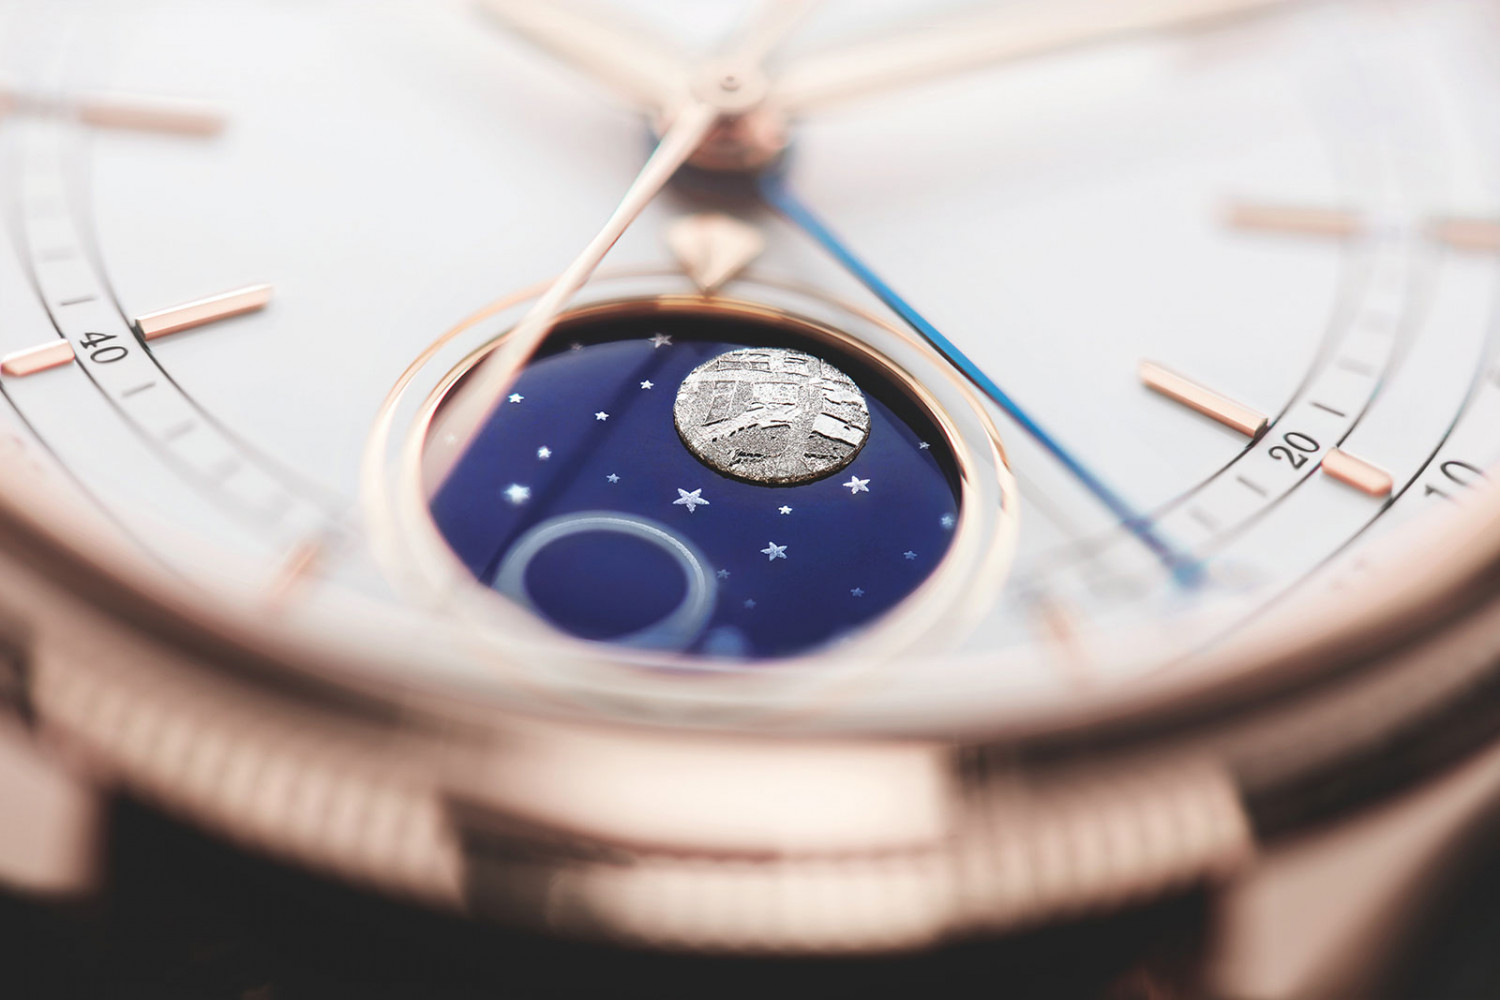 Rolex Cellini Moonphase in Everose gold, reference 50535